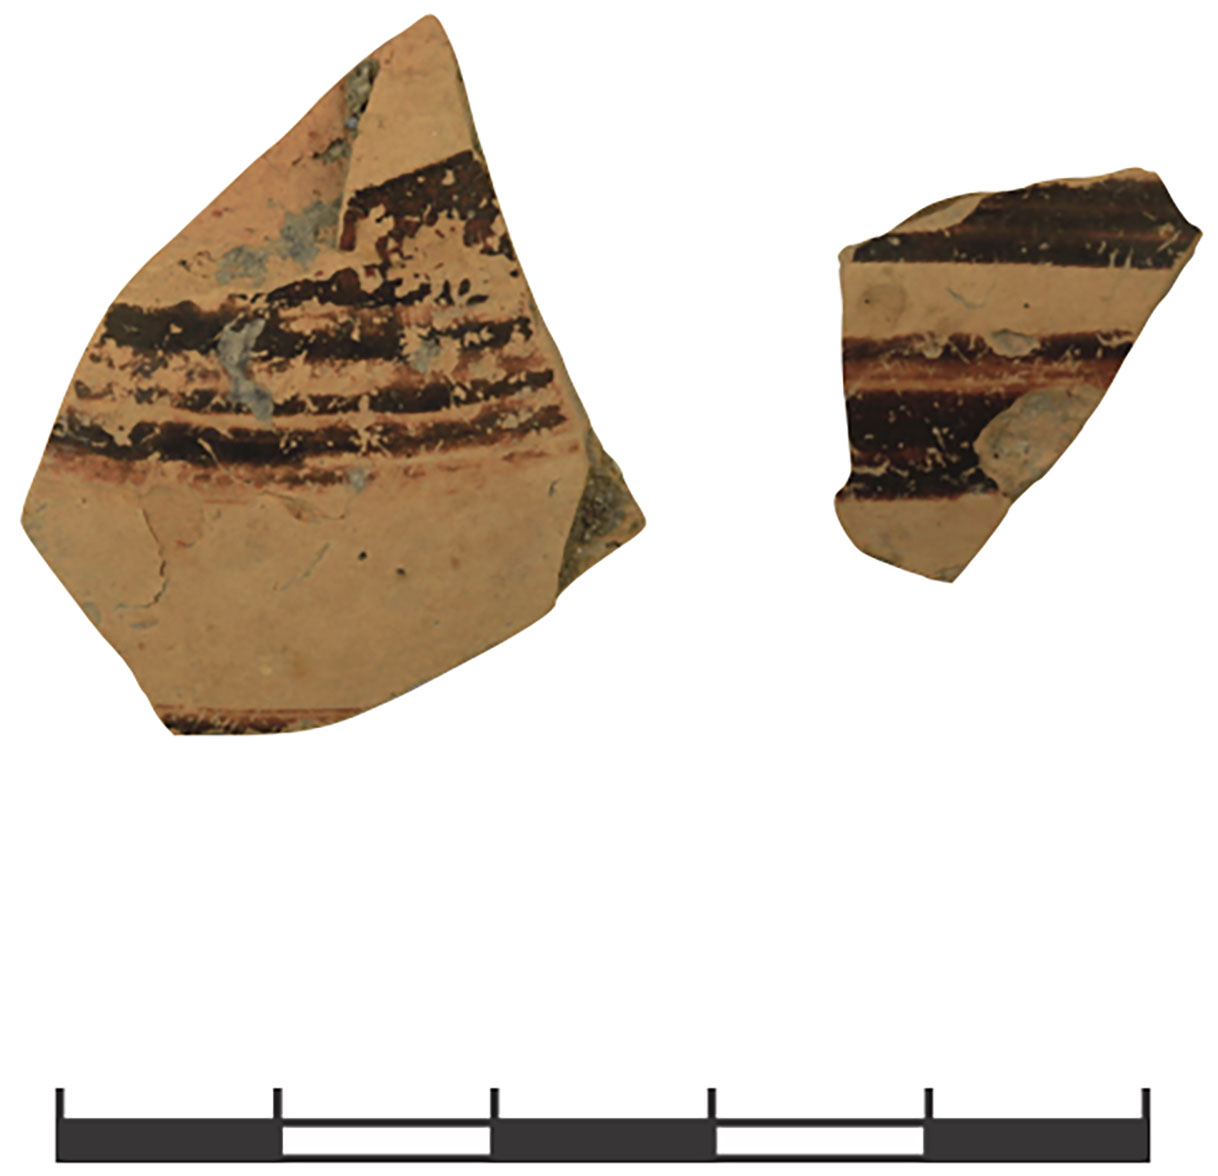 Fig. 10. Two fragments of Mycenaean Decorated Ware from the LB 2 phase 1: left, 97.541.278.89 (LH IIIA2/B); right, 97.541.278.58 (LH IIIB) (H. Hatay; © Gygaia Projects).